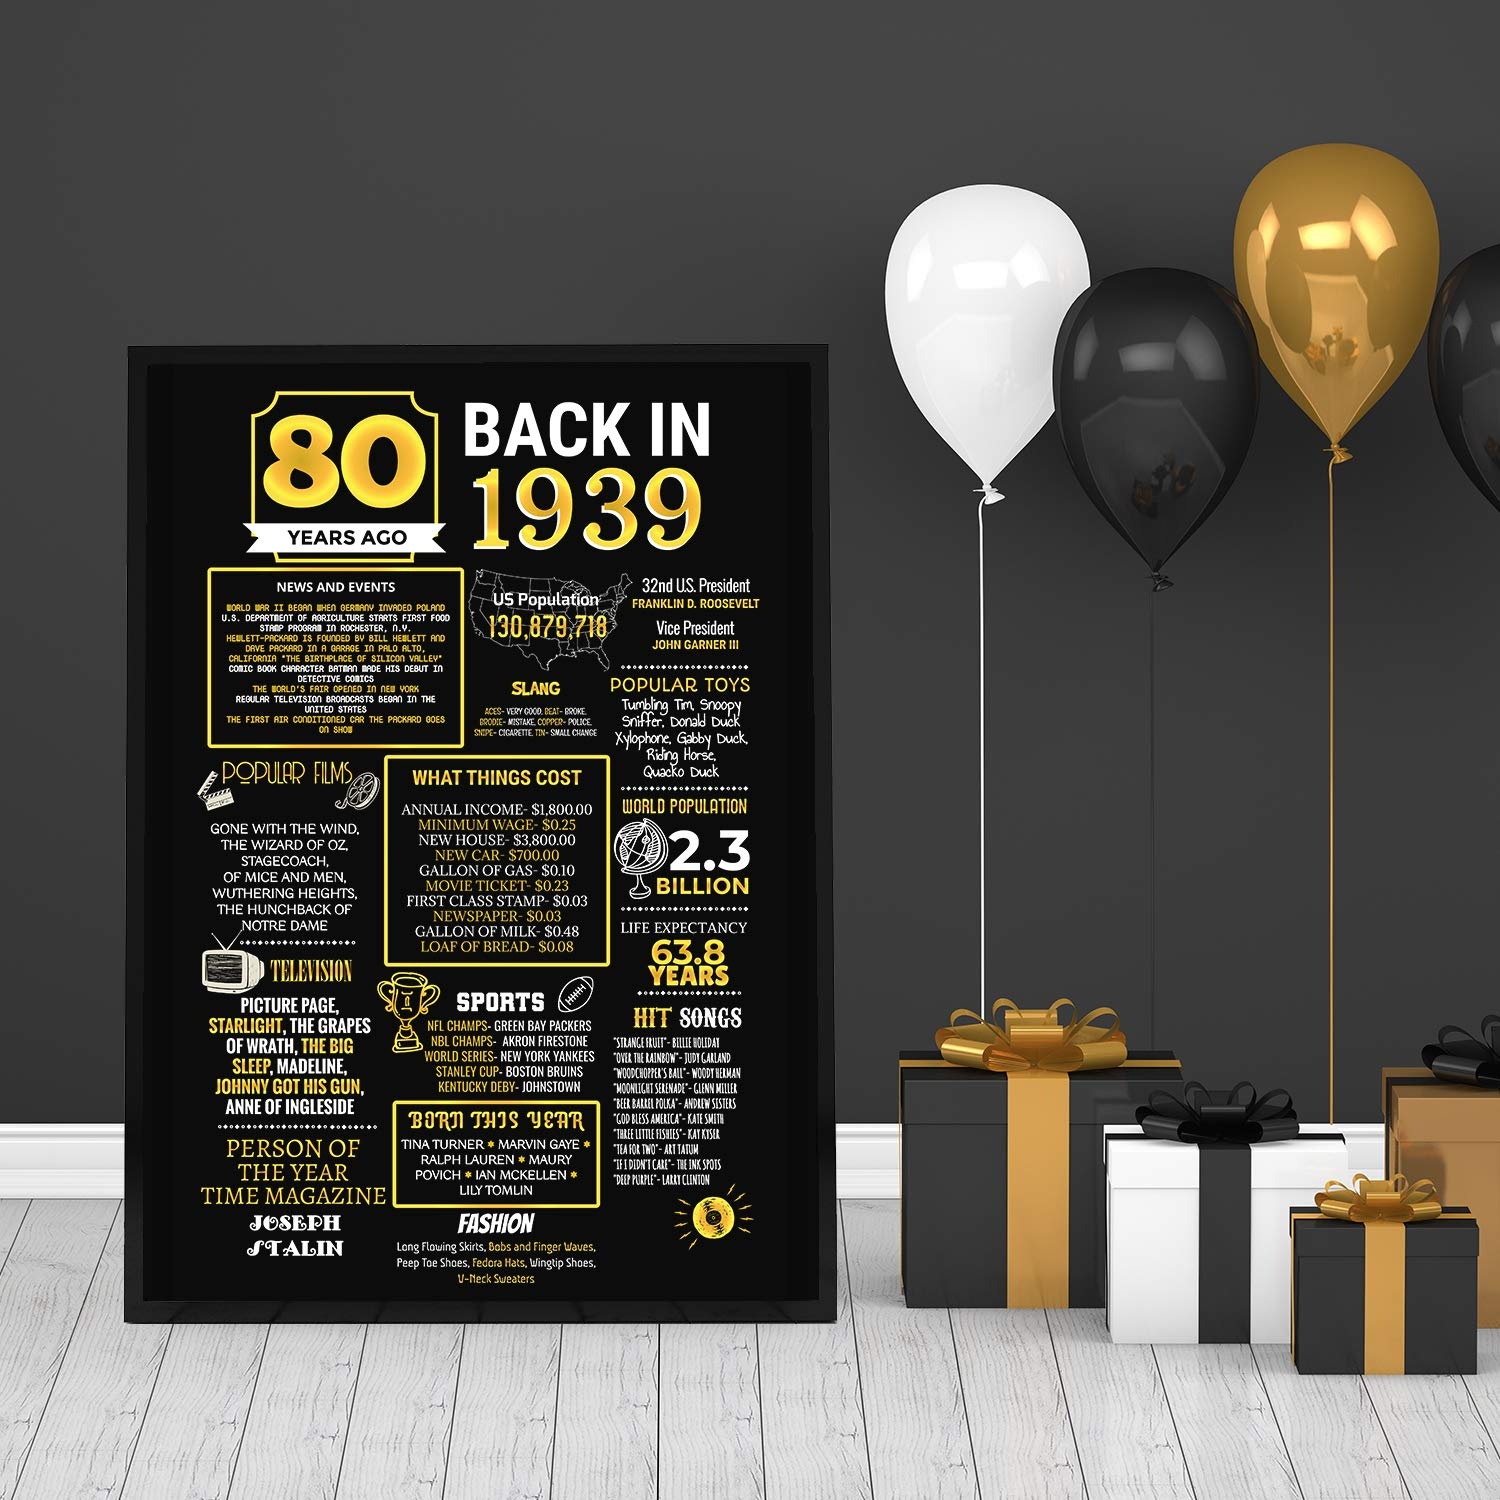 90 Years Pink Pixie Studio 1929 90 Years Ago Birthday or Wedding Anniversary Poster 11 x 17 Party Decorations Supplies Banner for Women Men Him Her Husband Wife Mom Dad